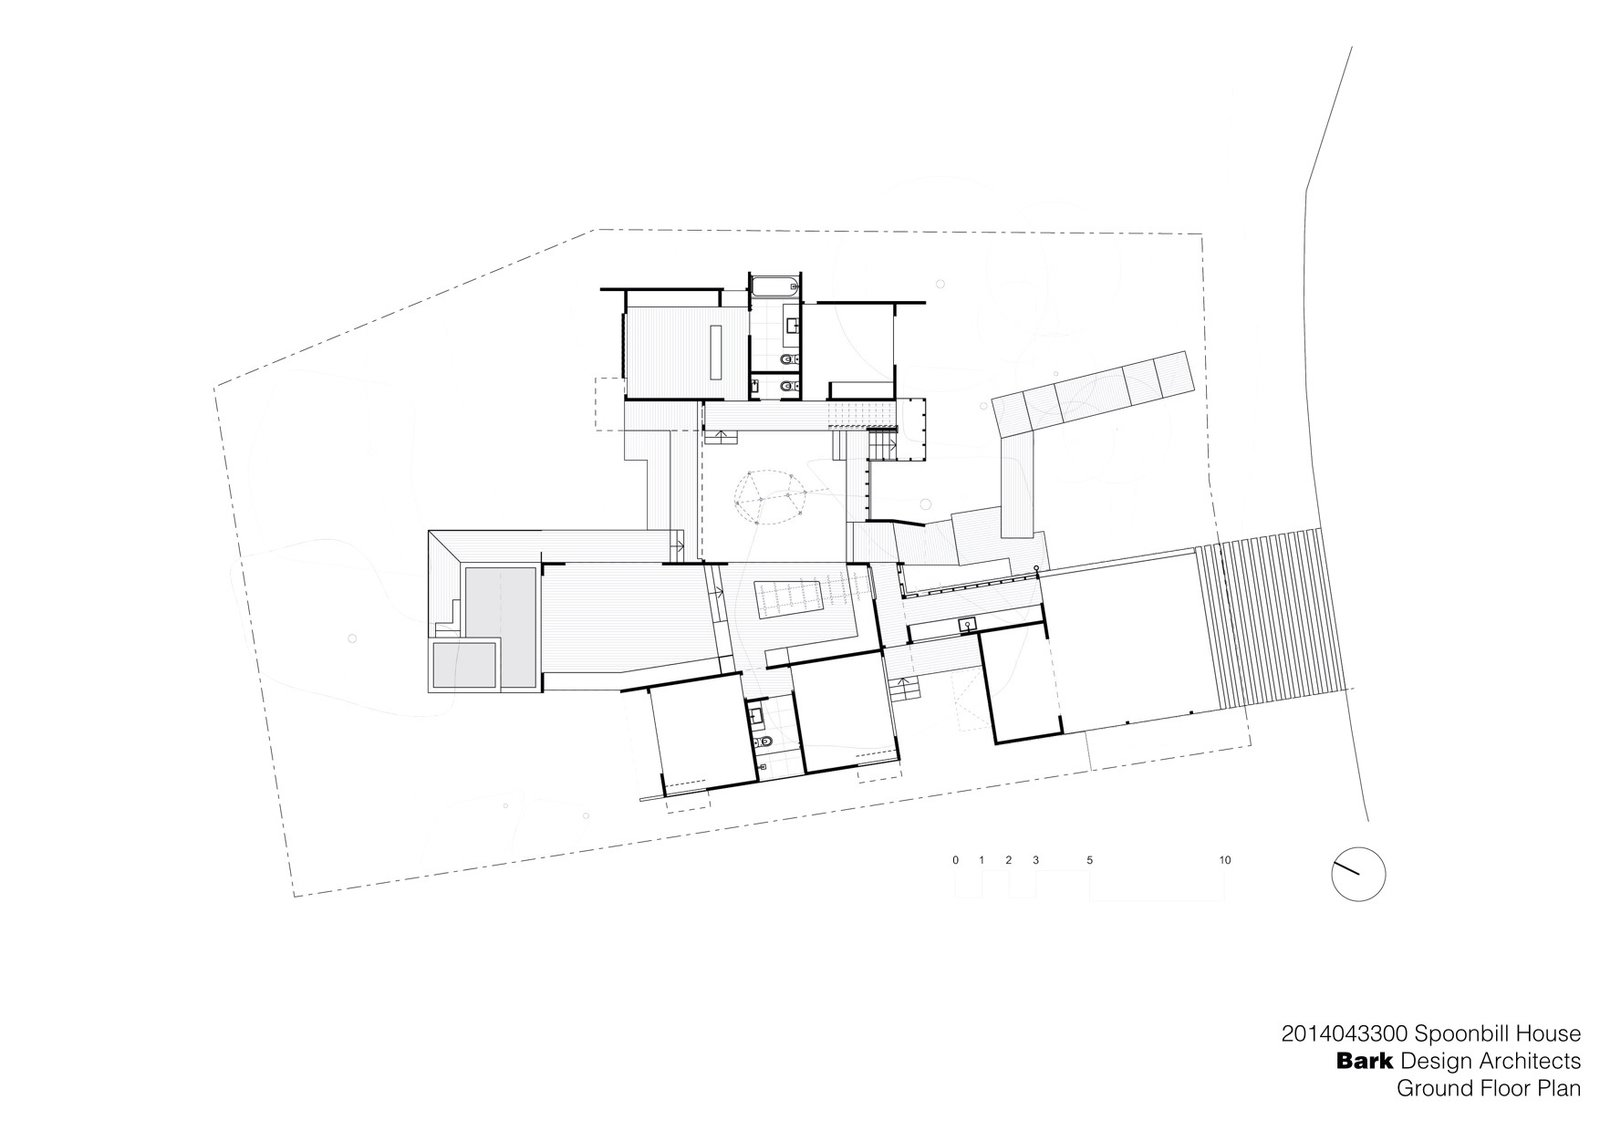 Spoonbill House Ground Floor Plan  Photo 9 of 10 in Vegetation Cocoons This Tranquil Beach House in Australia